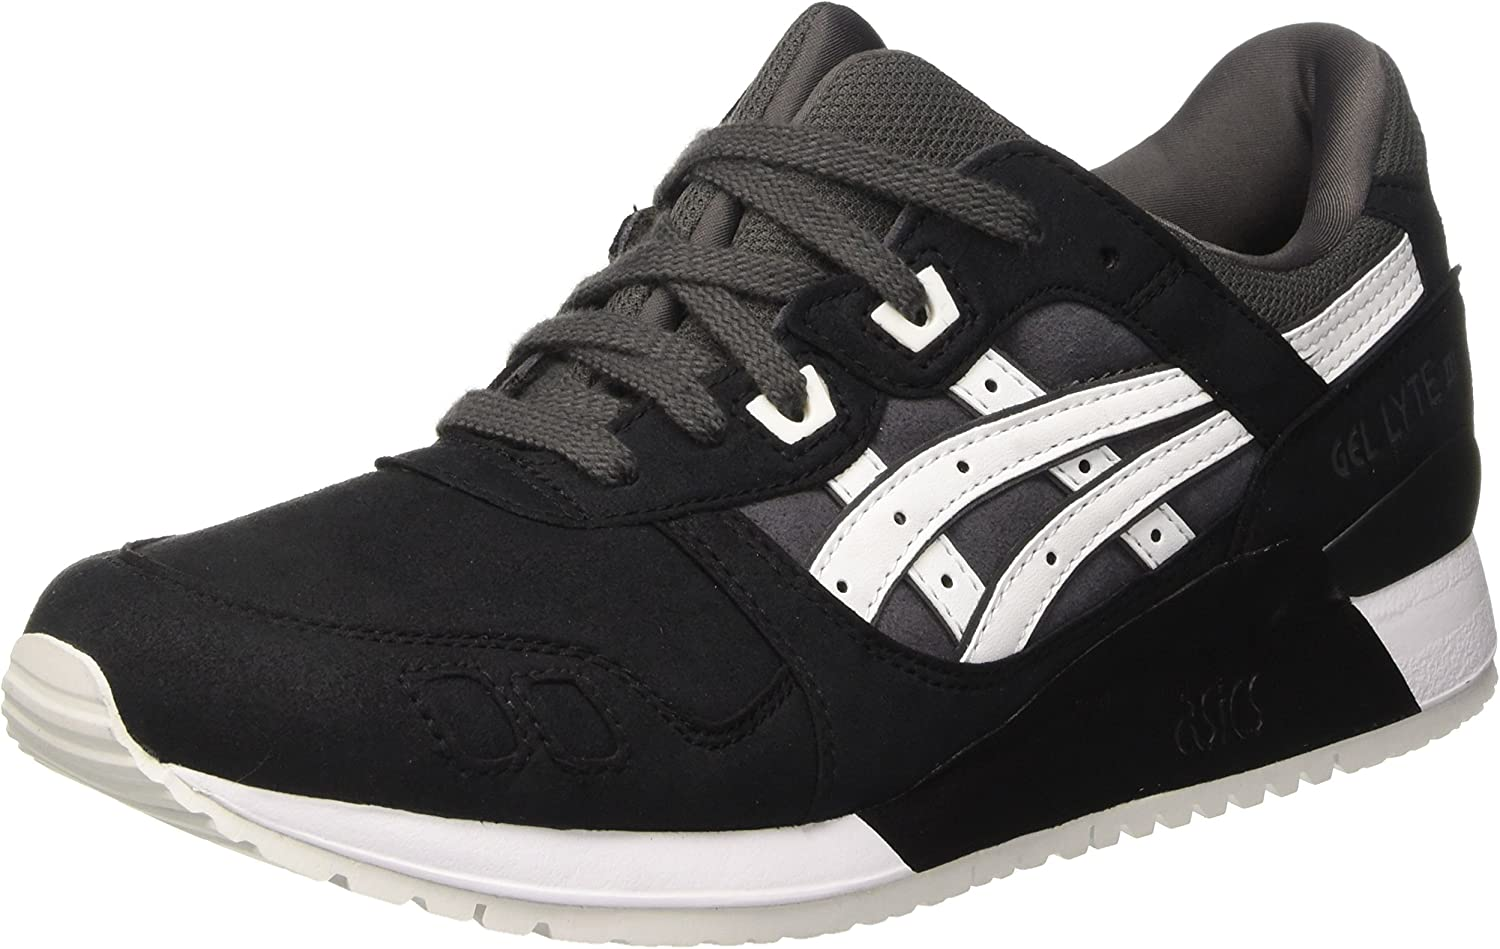 ASICS Men's Gel-Lyte Iii Sneakers